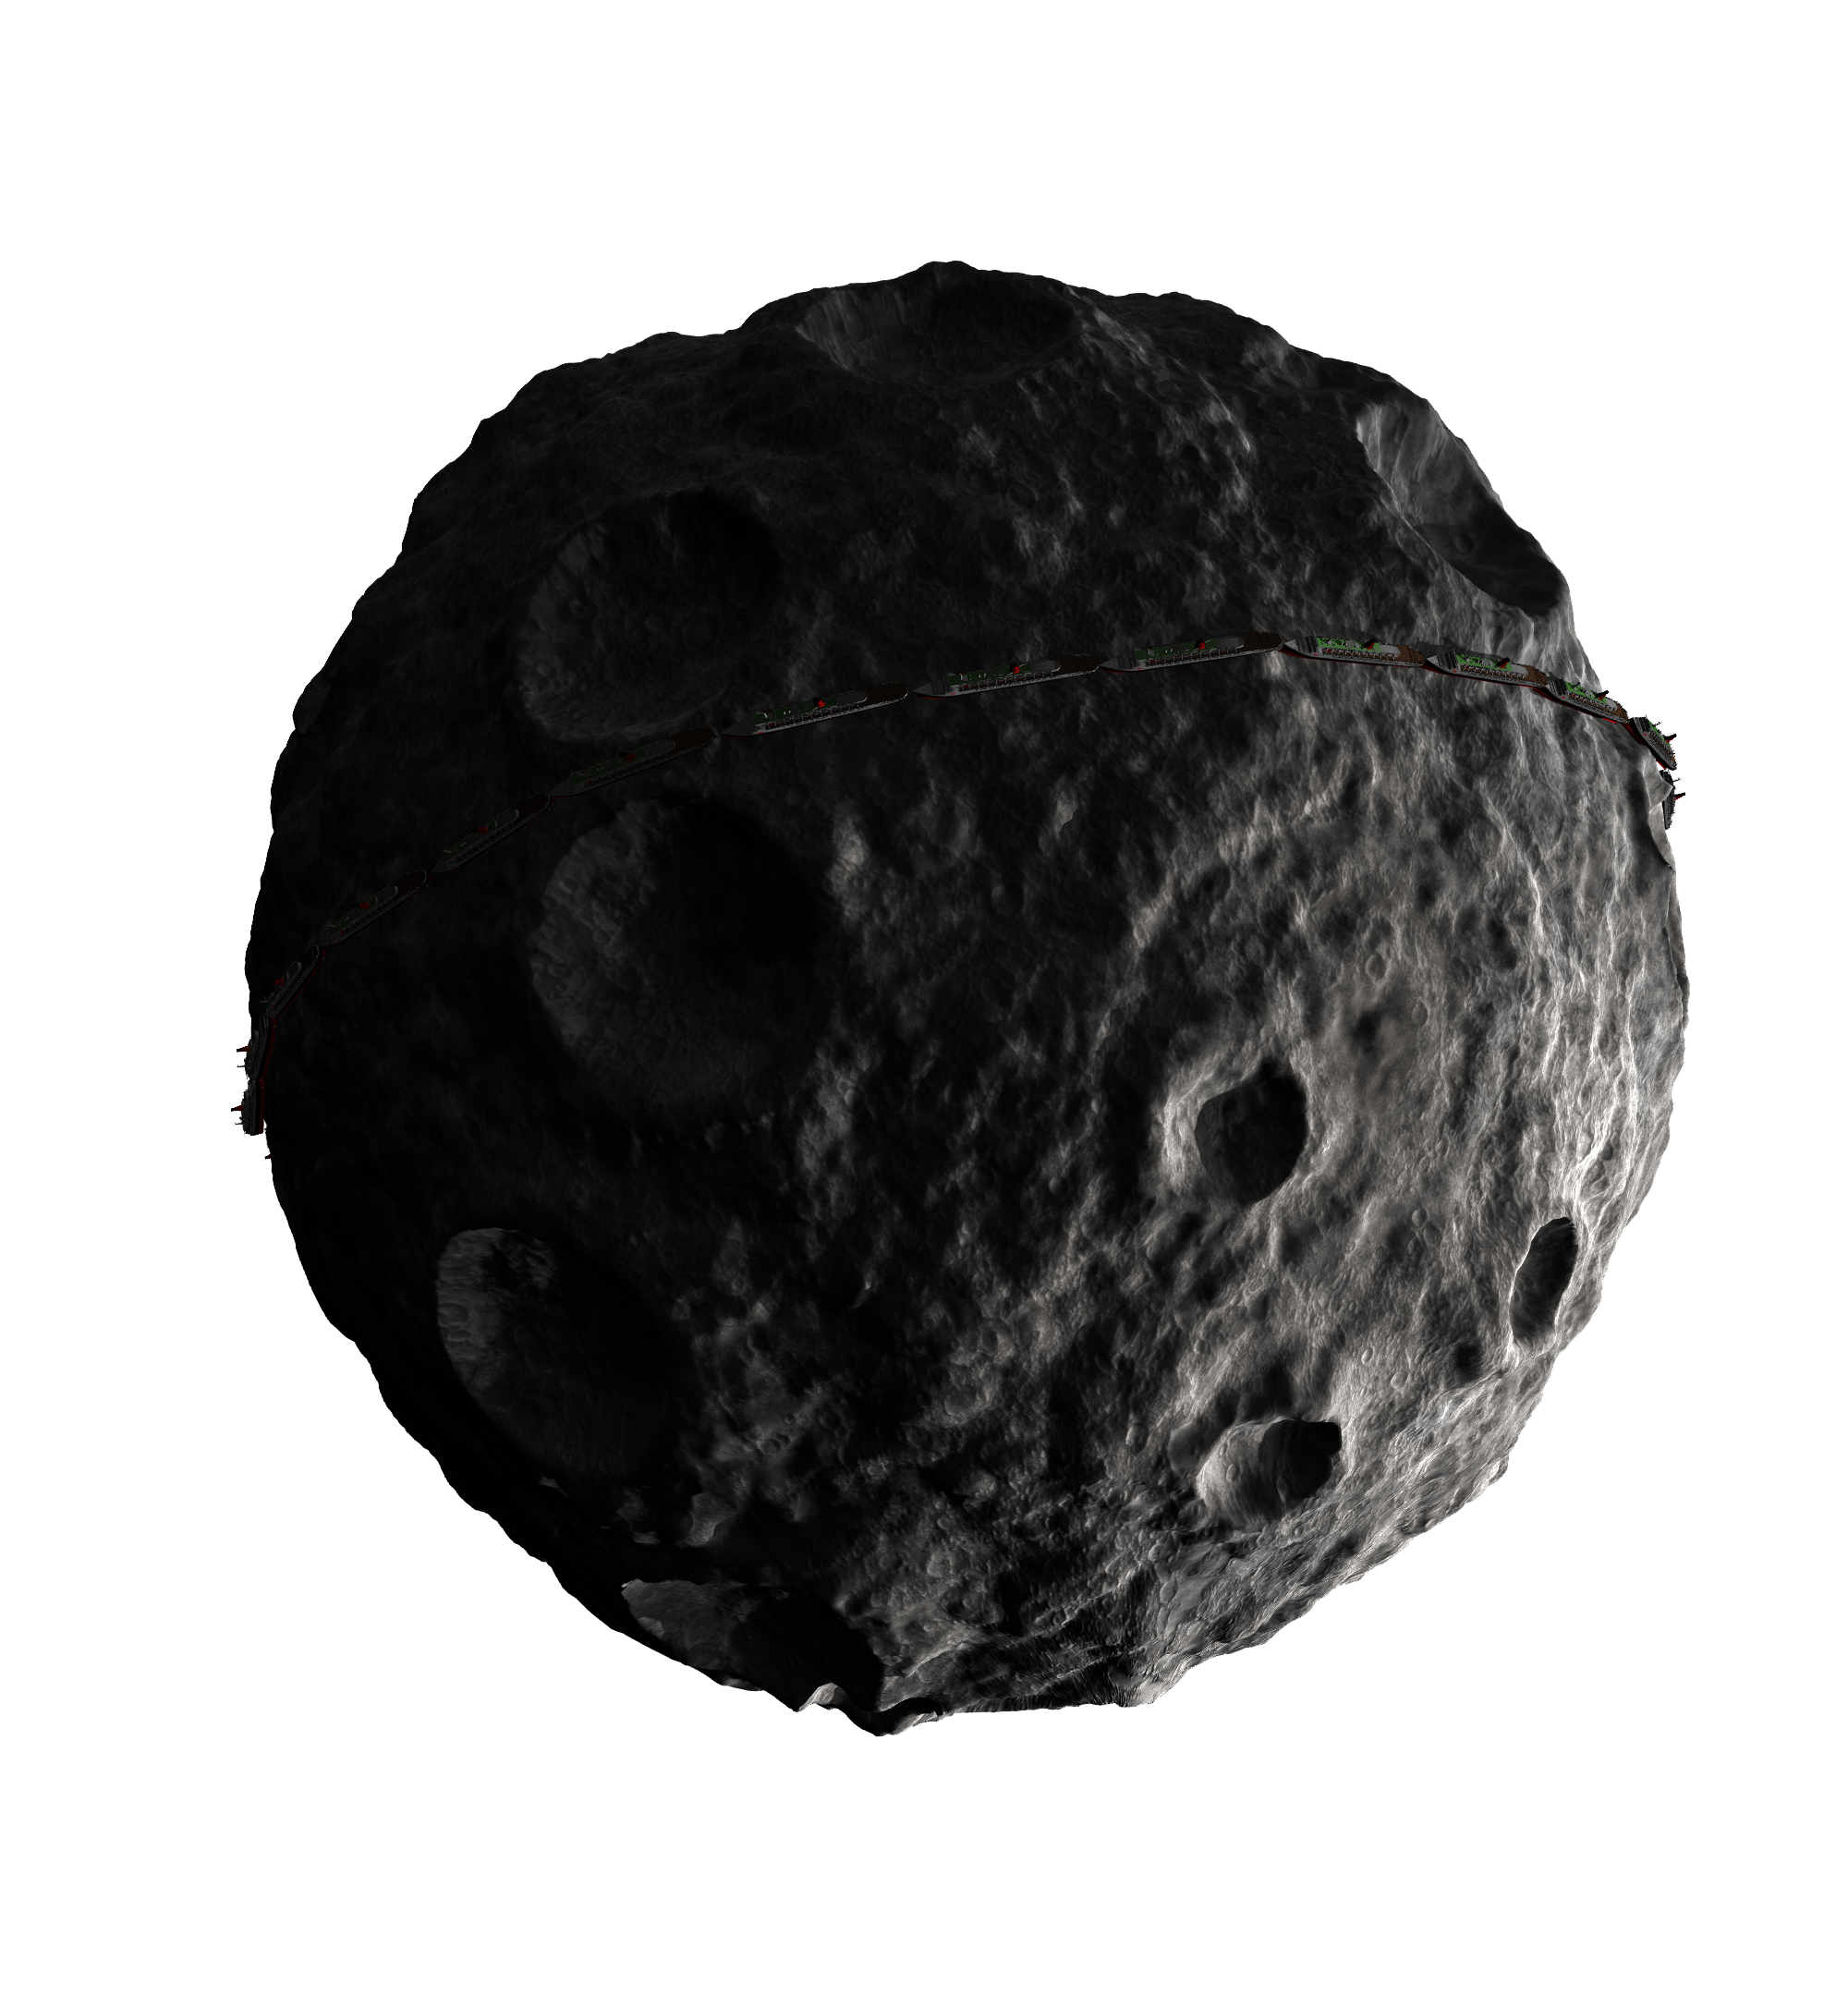 Asteroid PNG Images Transparent Free Download.